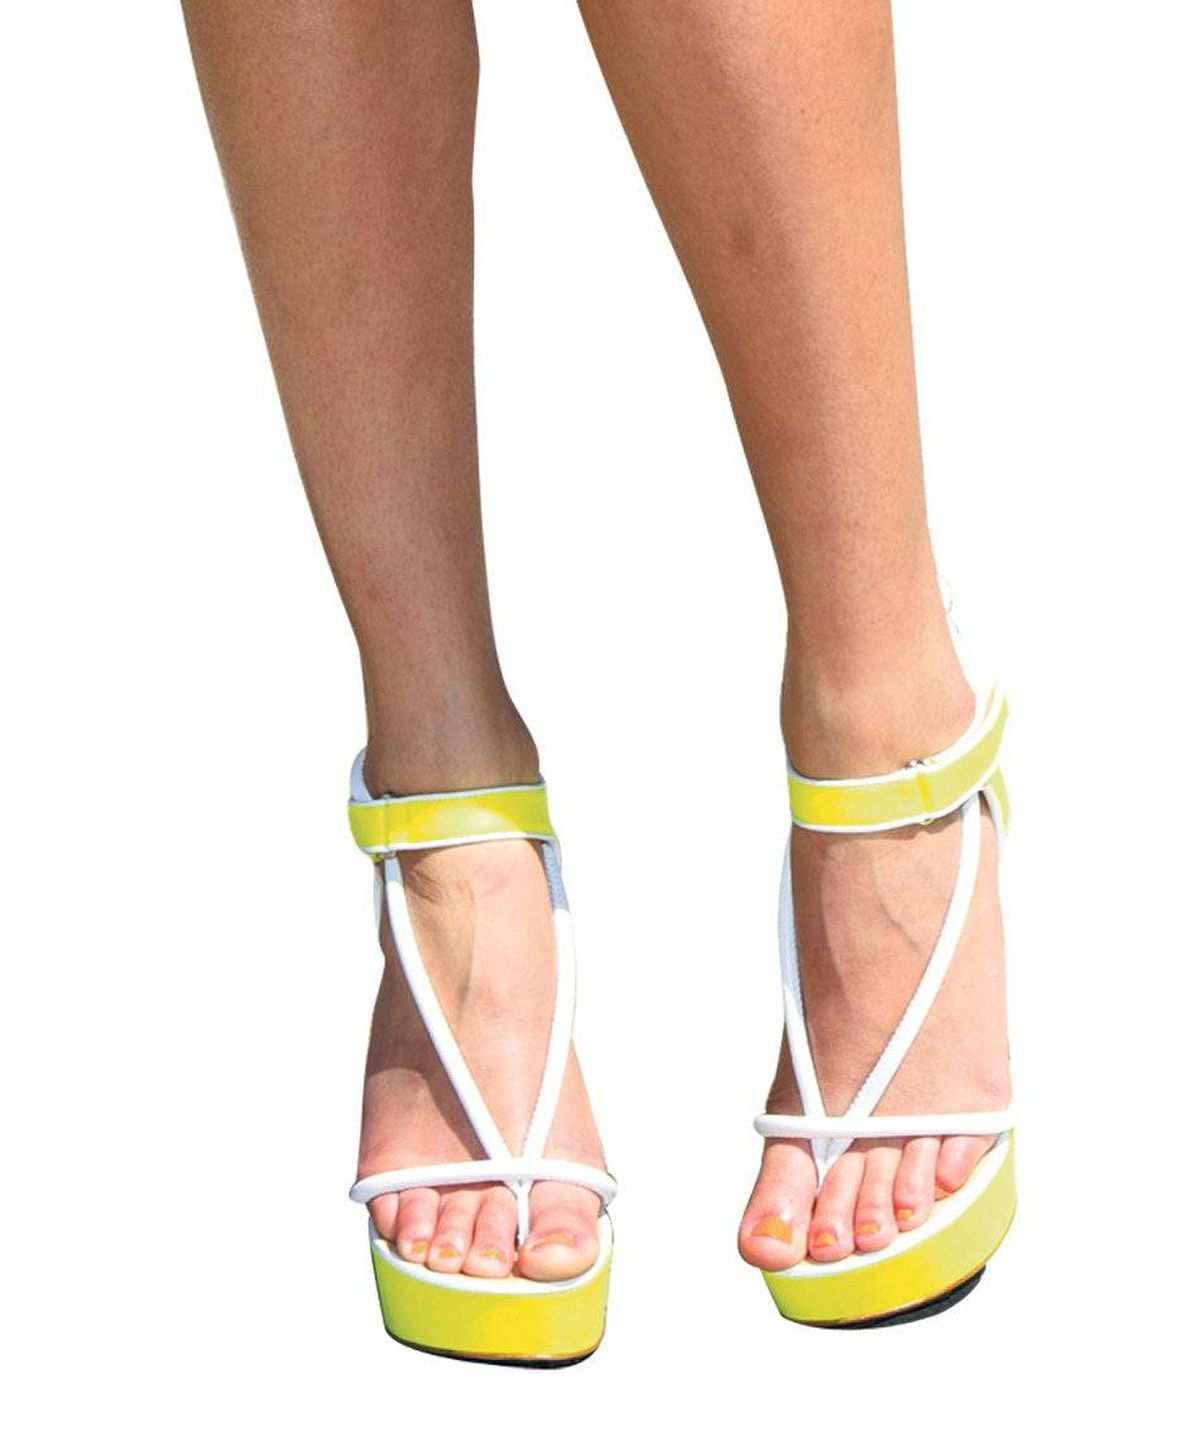 Bright heels: Think of this fluoro grouping as another way to tap into the intense colour blocking that has permeated ready-to-wear fashion. Expect all eyes to be focused on these intense yellow strappies (so get a good pedicure!) Christopher Kane heels, $835 at the Room at the Bay